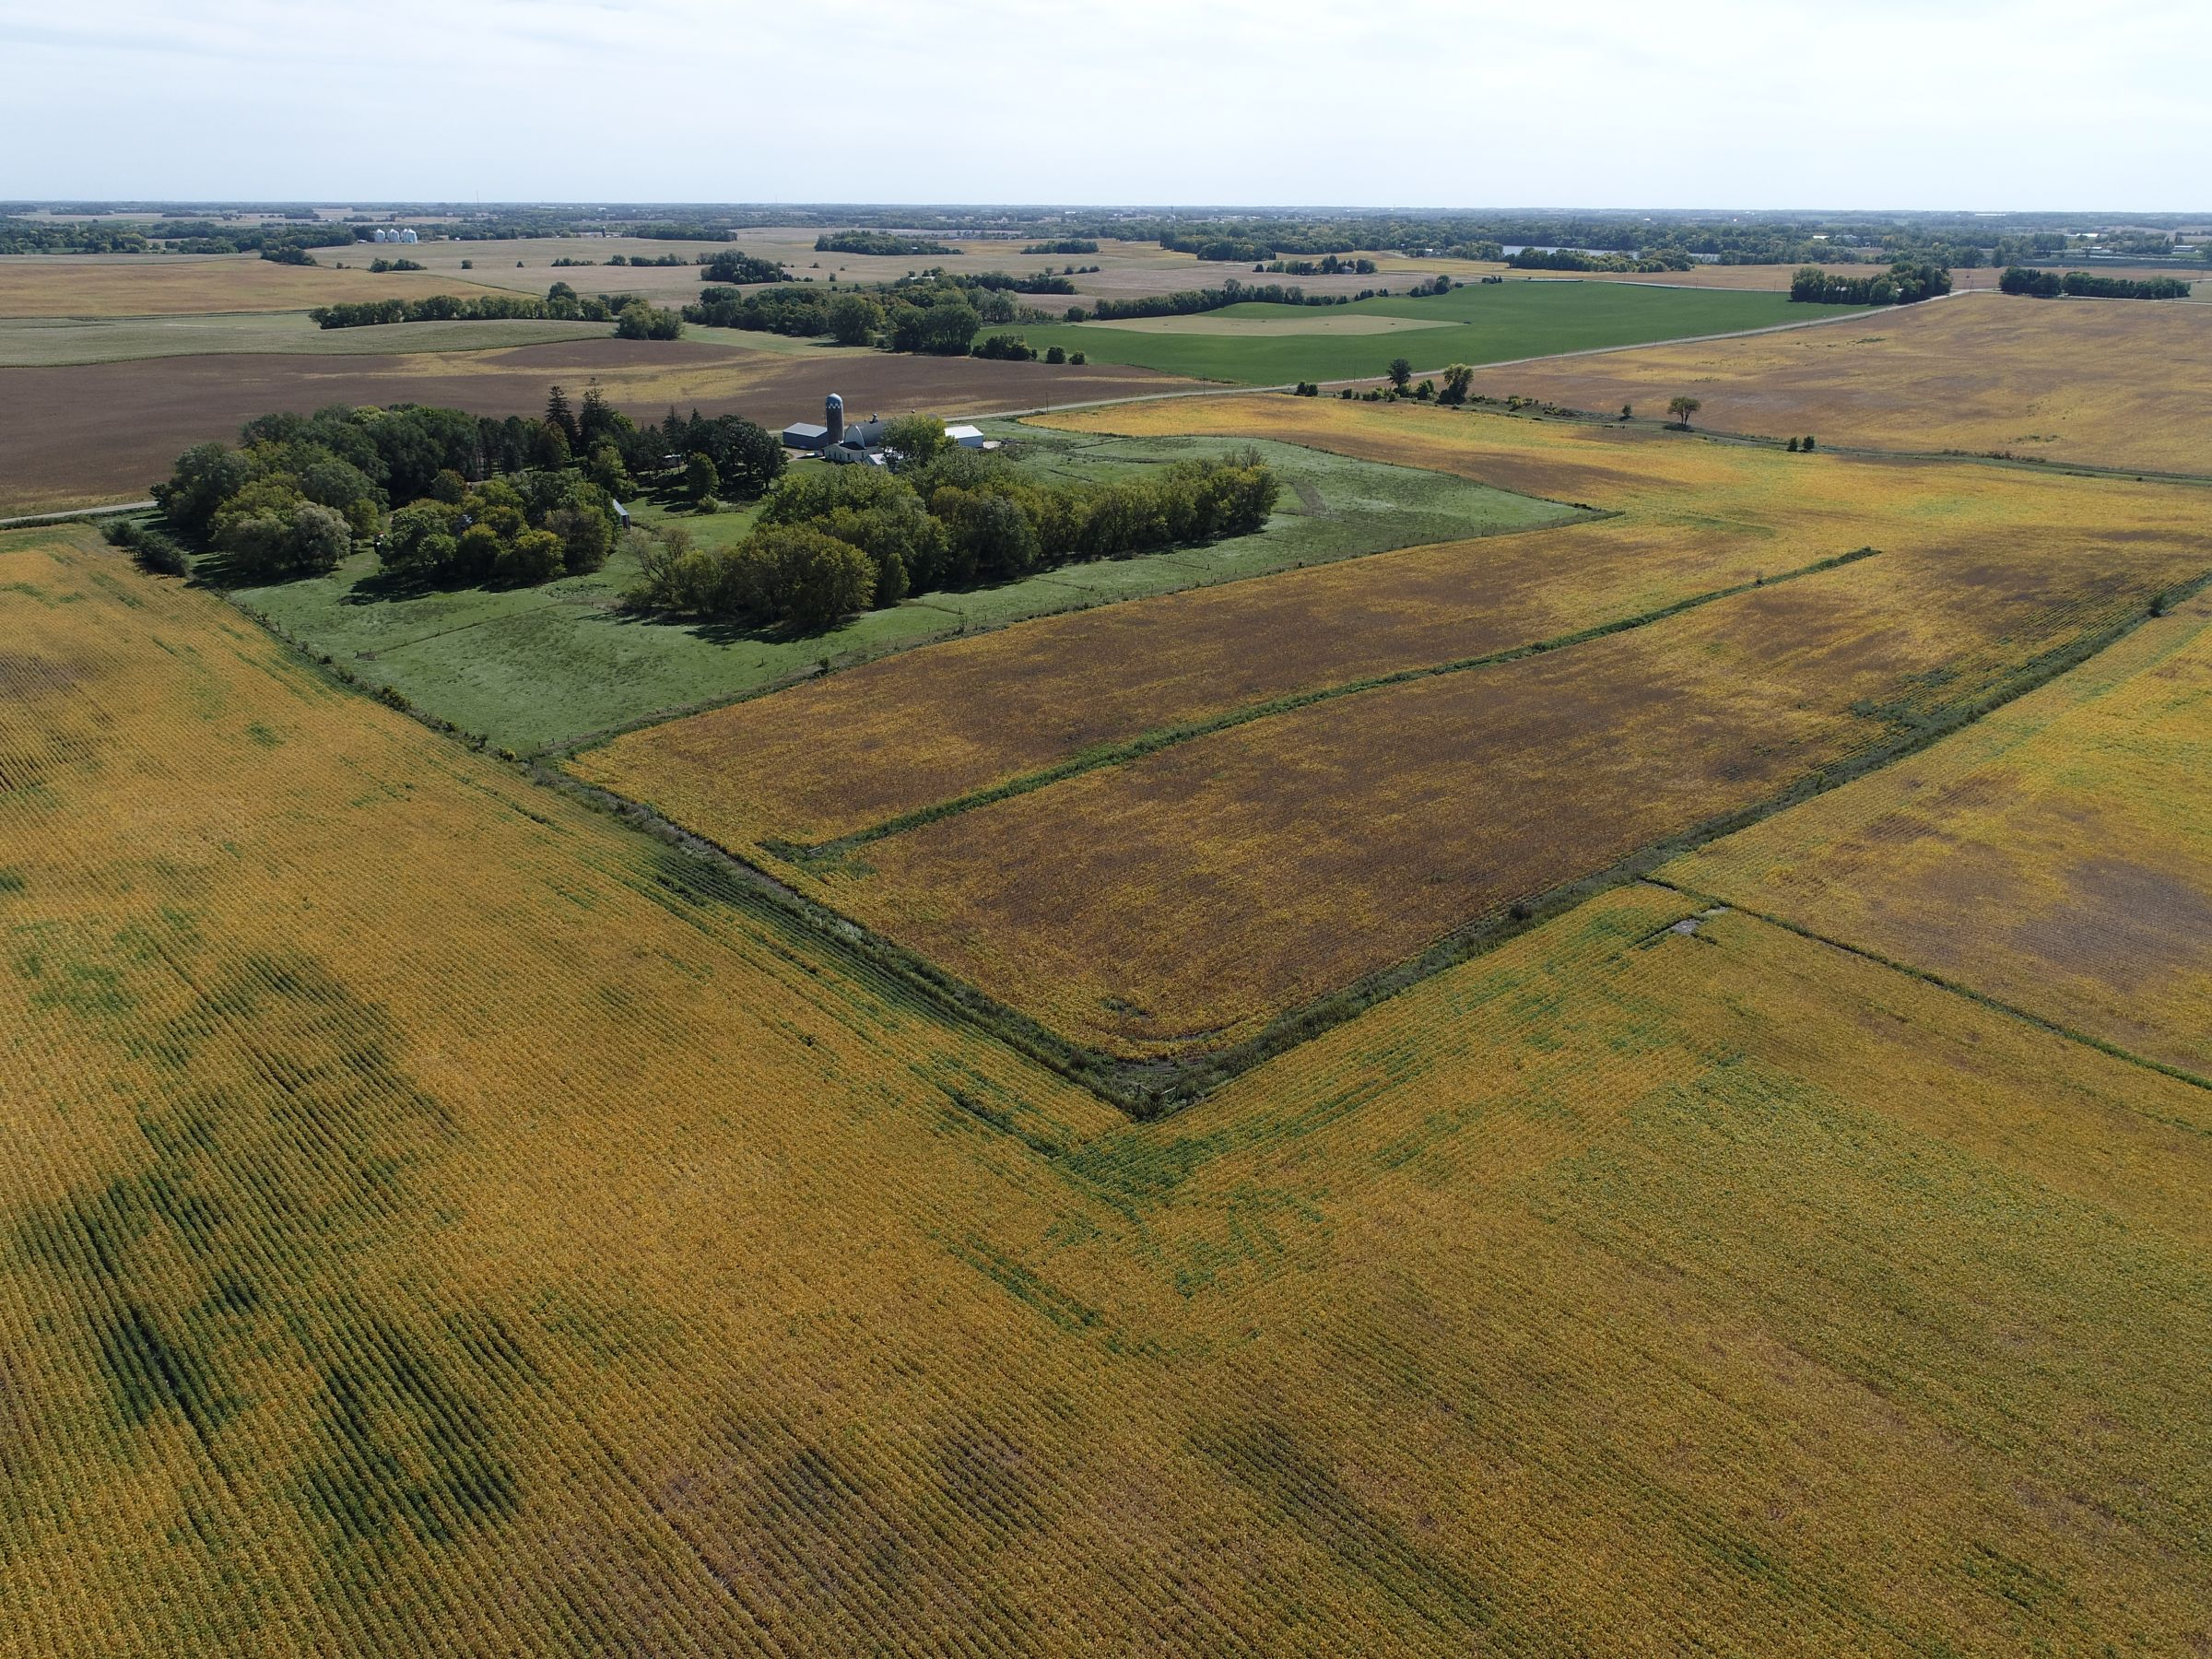 residential-wright-county-minnesota-0-acres-listing-number-15779-3-2021-09-27-235817.JPG